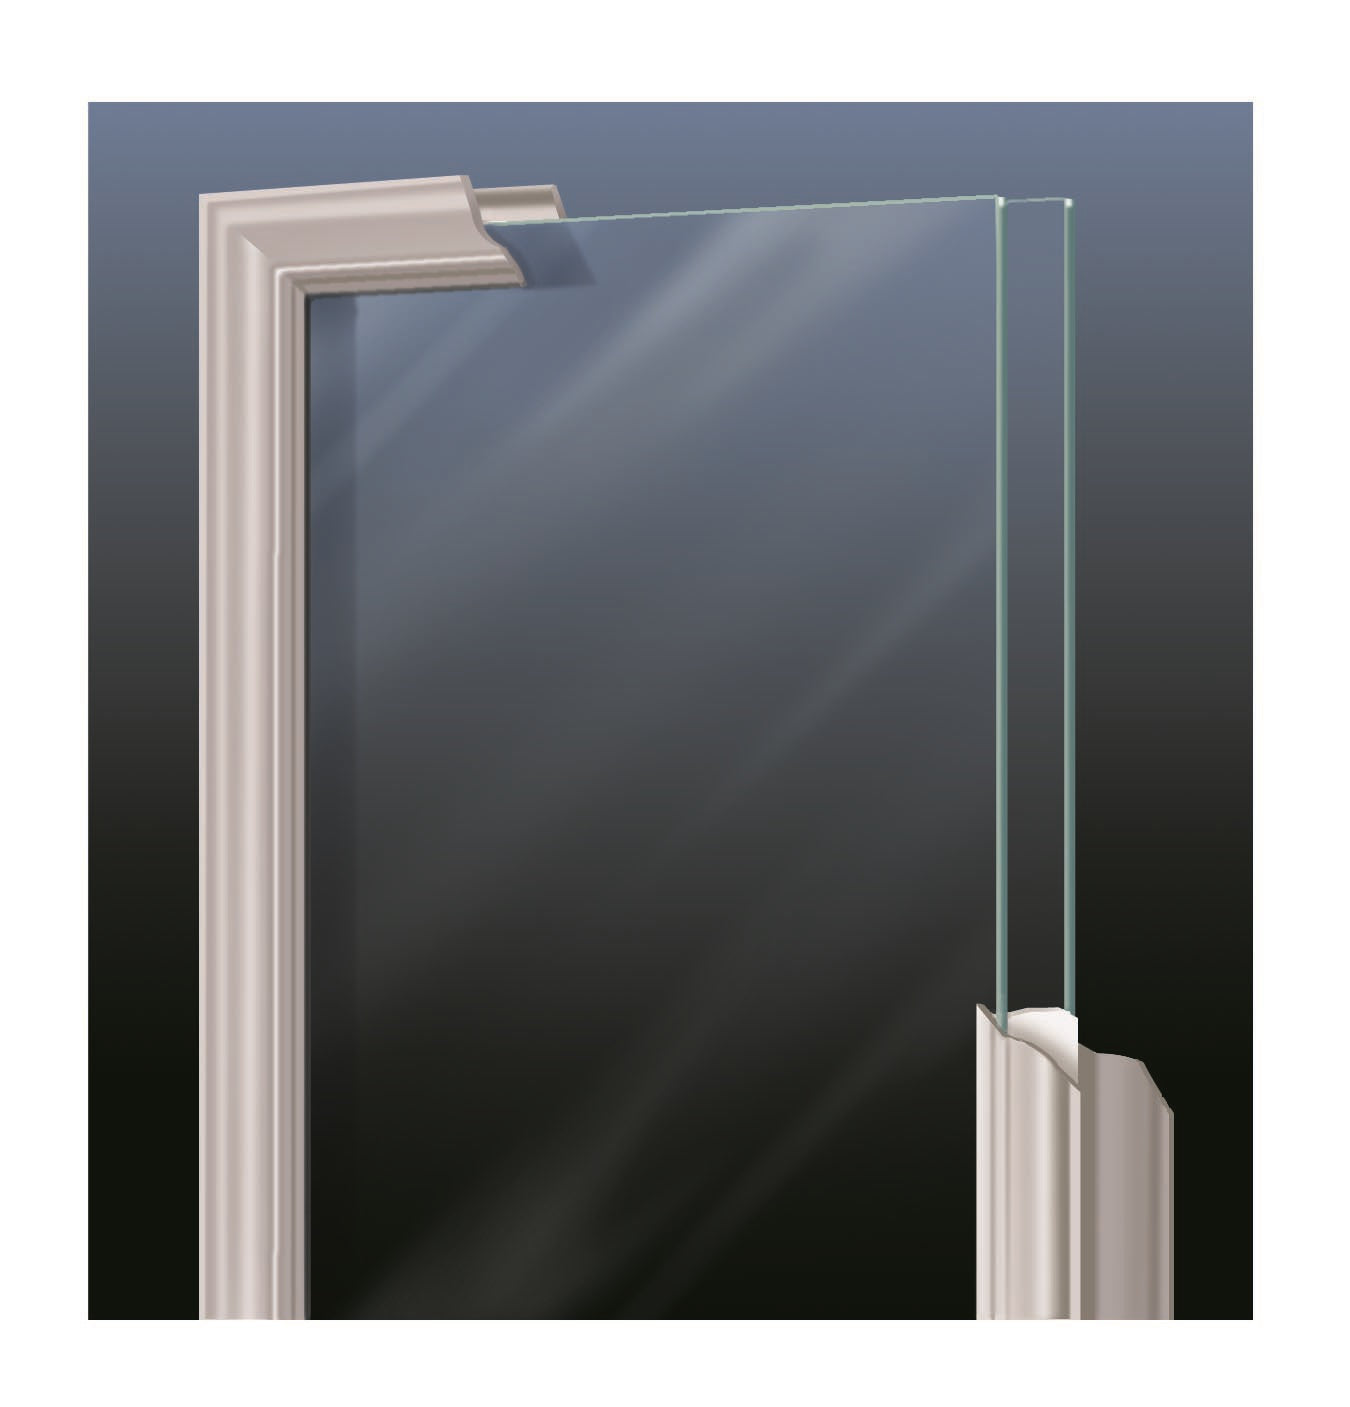 "Clear Arched Top Glass and Frame Kit (Half Lite 22"" x 38"" Glass Size)"